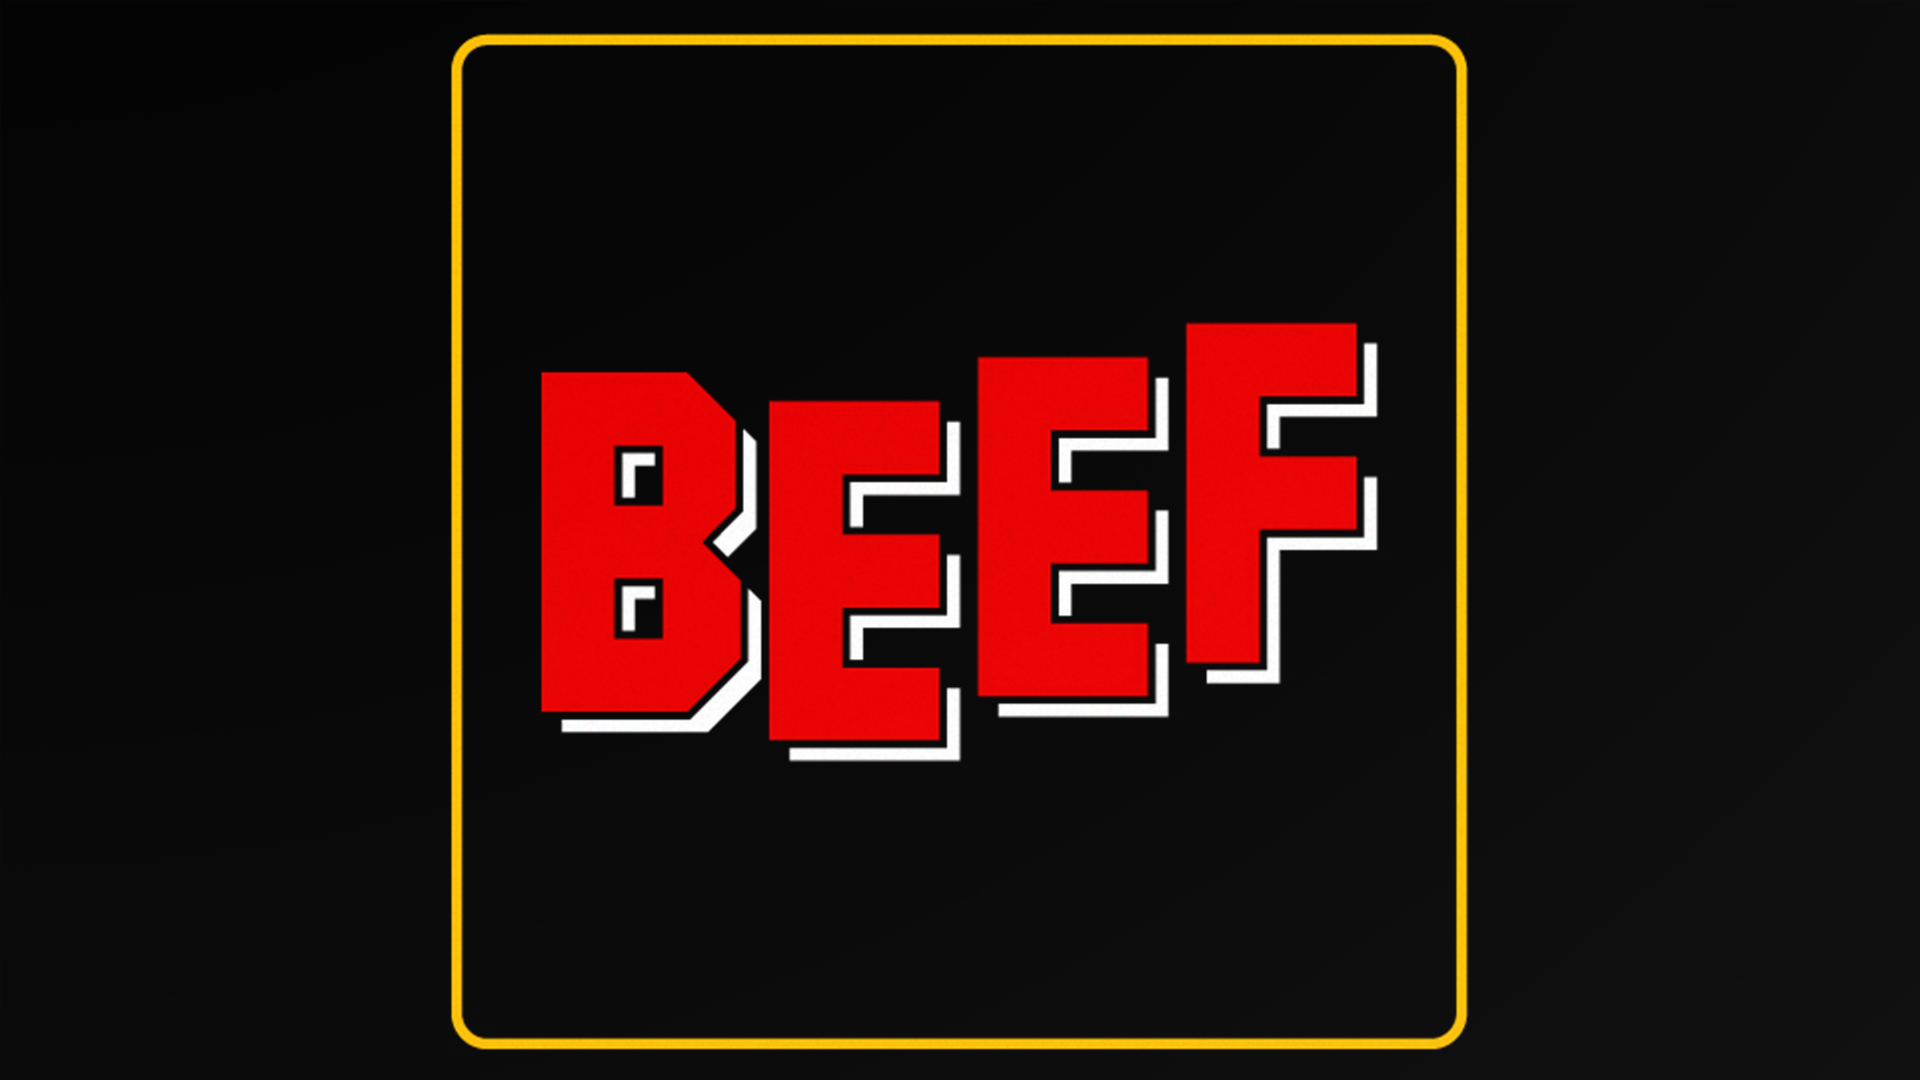 Welcome to Beef City